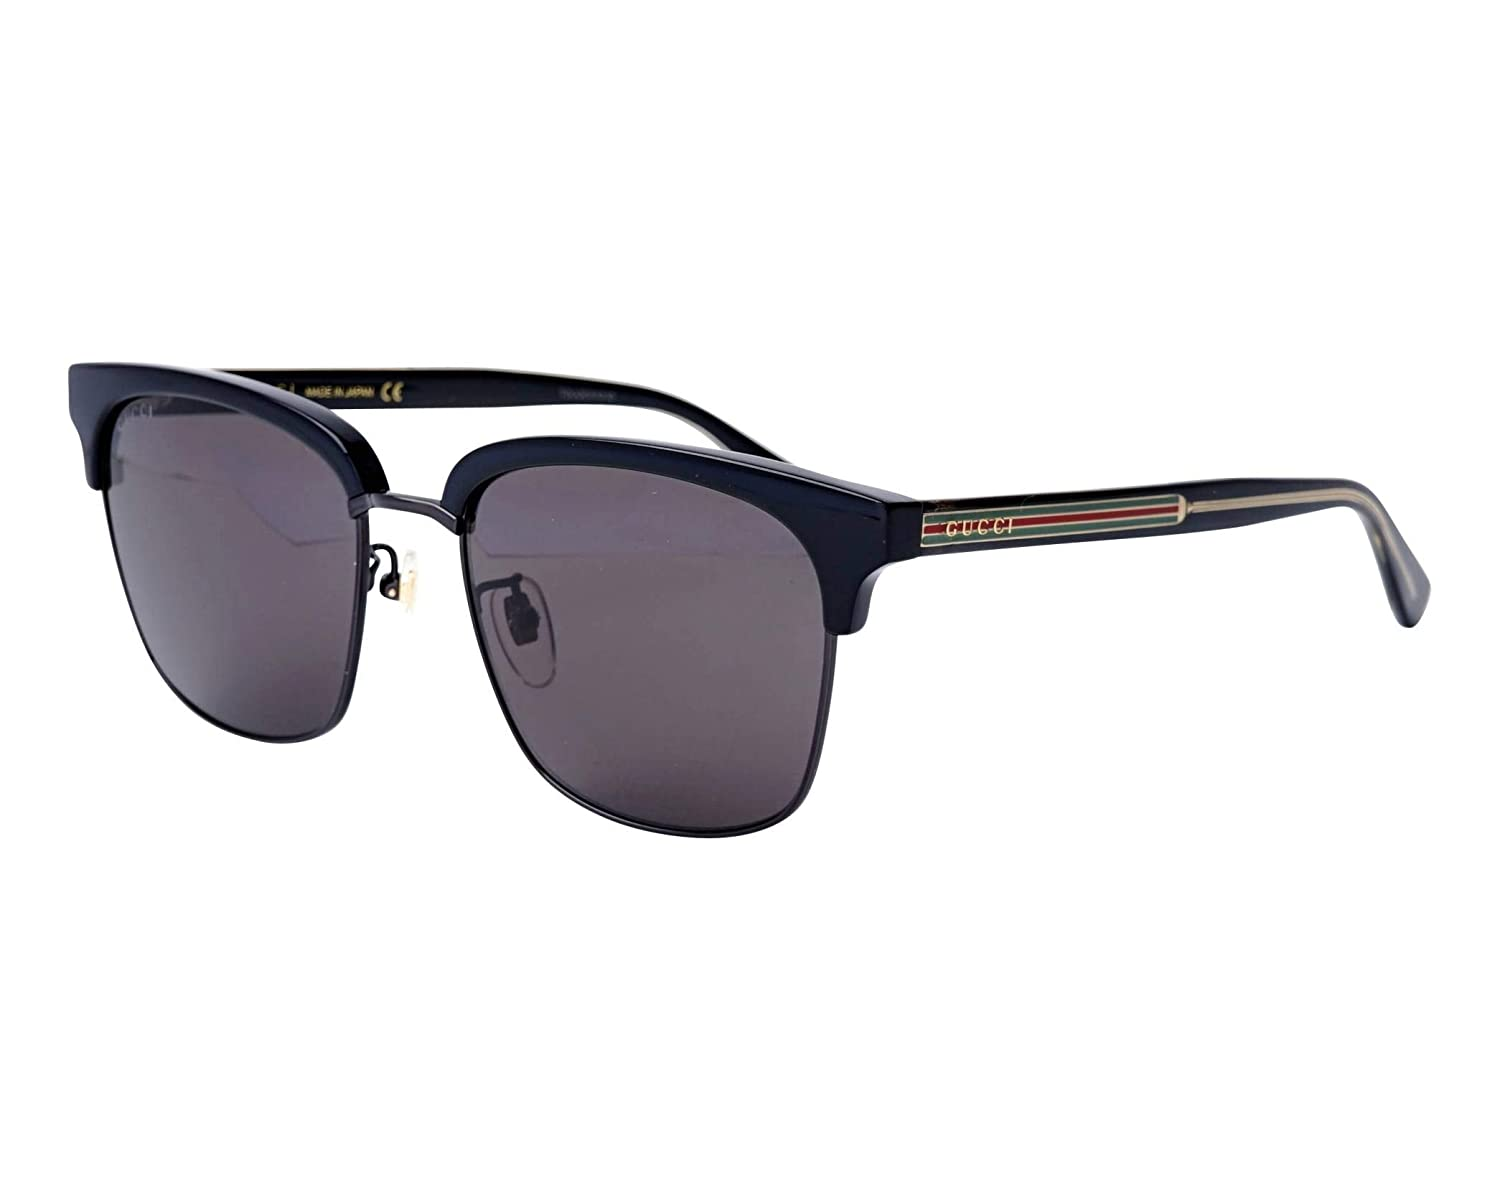 90b406720b Amazon.com  Gucci GG0382S 001 Black GG0382S Butterfly Sunglasses Lens  Category 2 Size 59mm  Gucci  Clothing